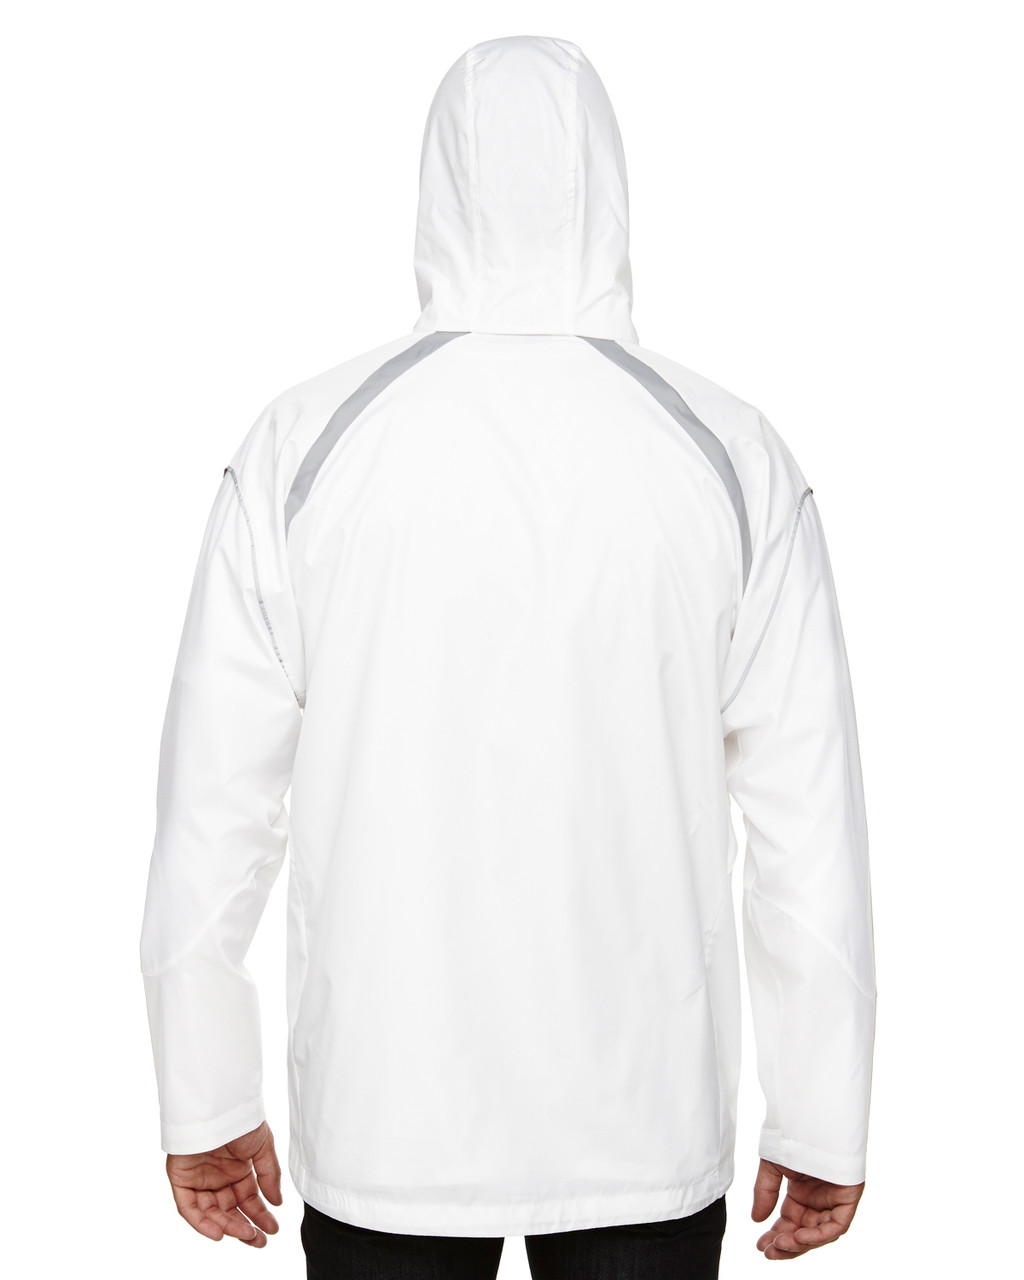 White - Back, 88168 North End Sirius Lightweight Jacket with Embossed Print | Blankclothing.ca